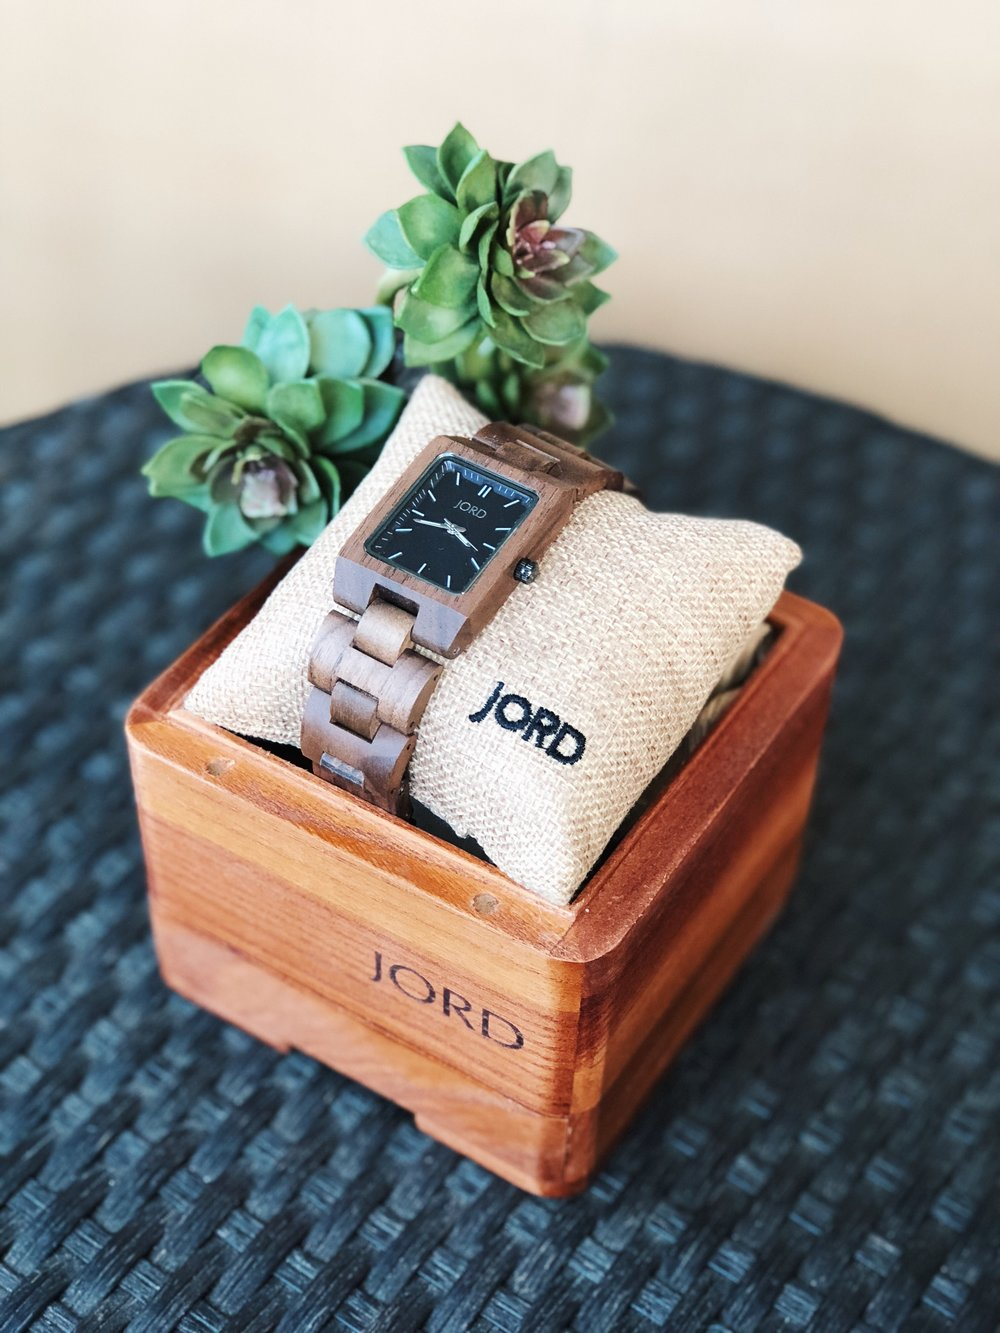 jord wooden watches for women